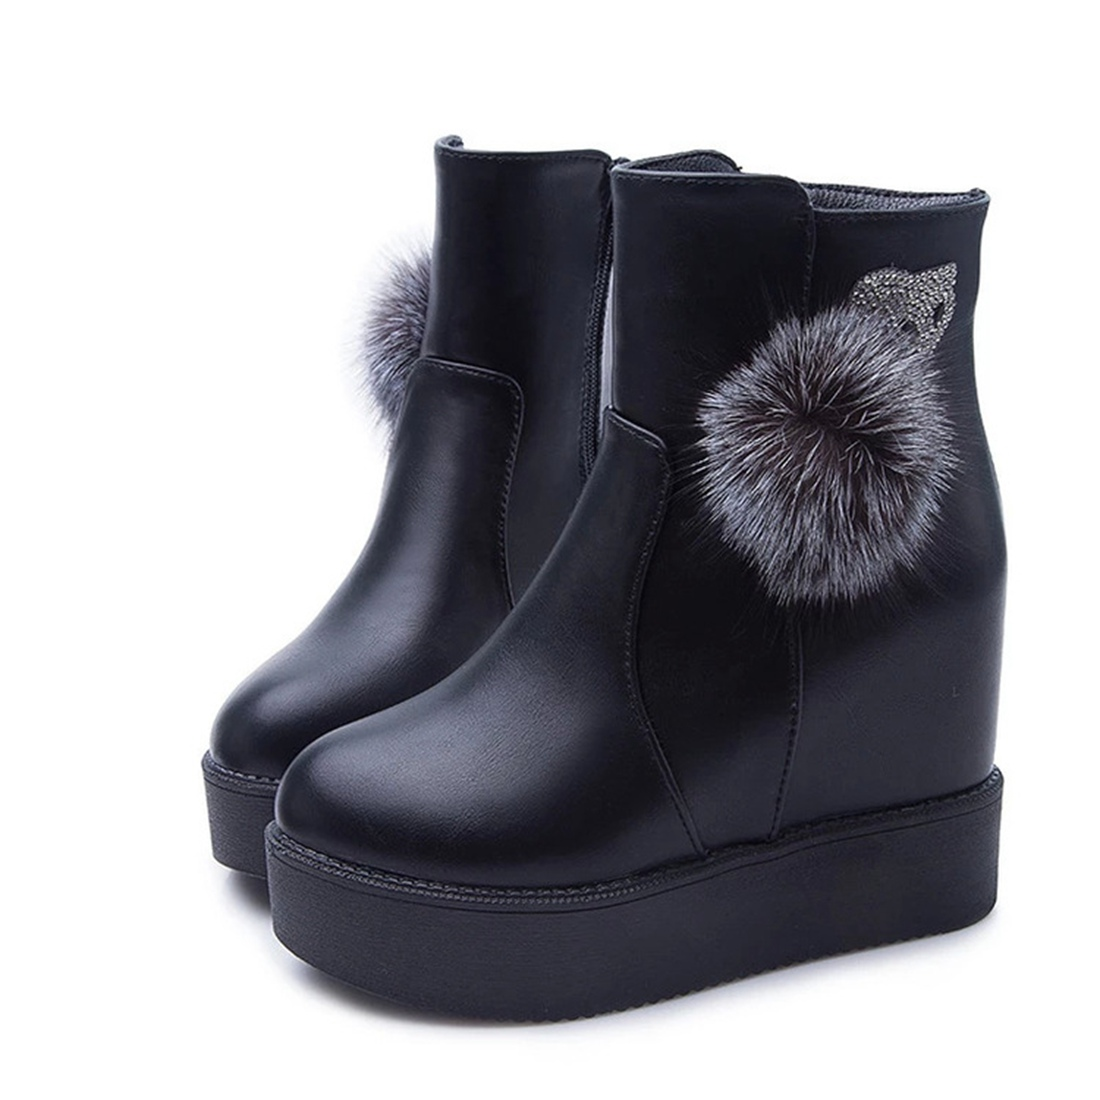 Womens Fashion Warm High heel Snow Boots Fox Drill Ball Winter Shoes Punk England Increase Platform Wedge Ankle Boots